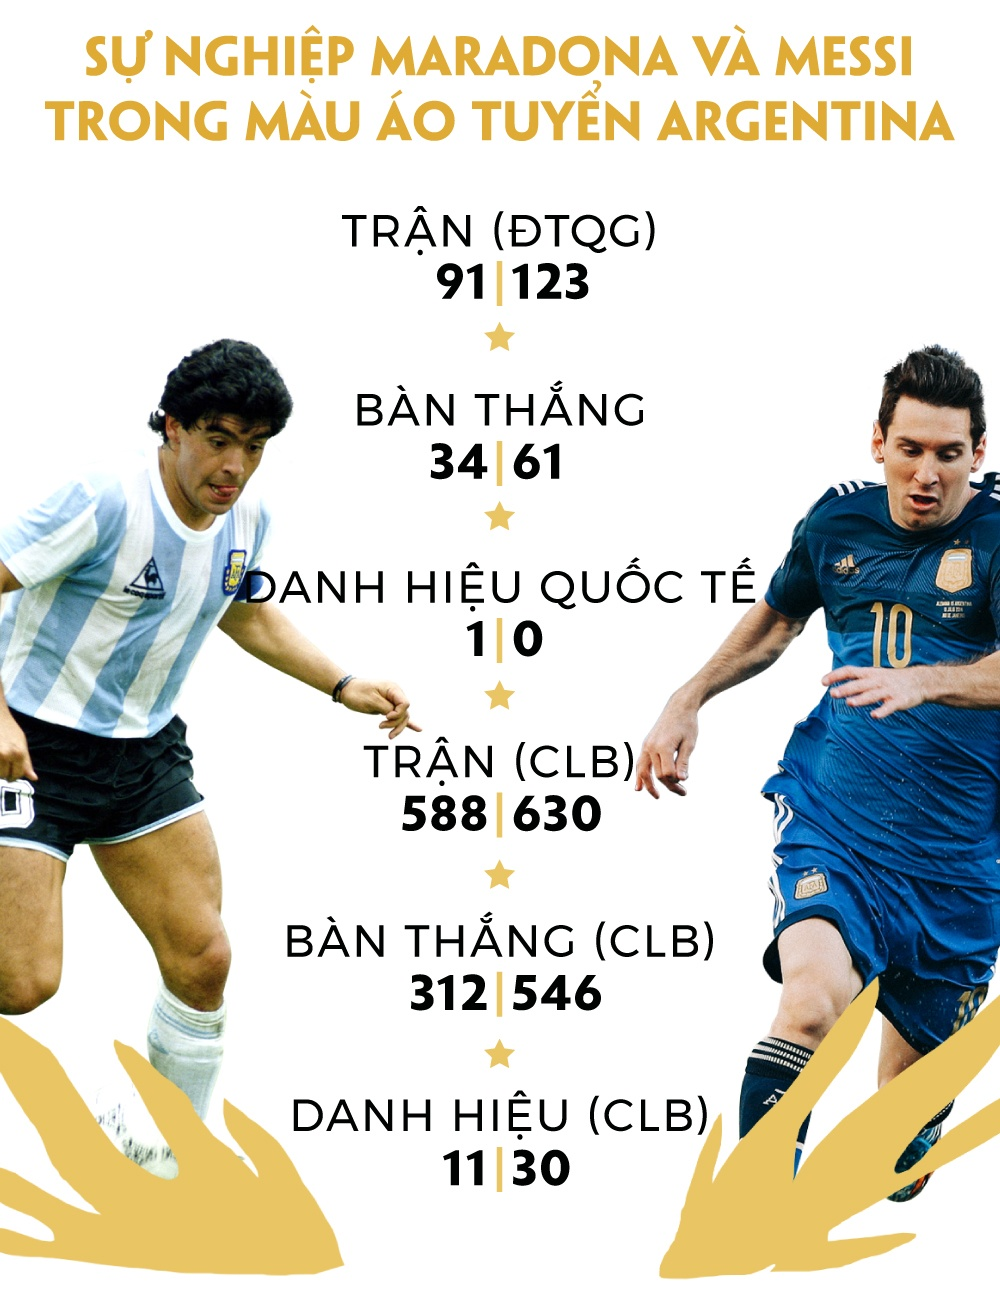 Lionel Messi truoc ngay phan quyet anh 6